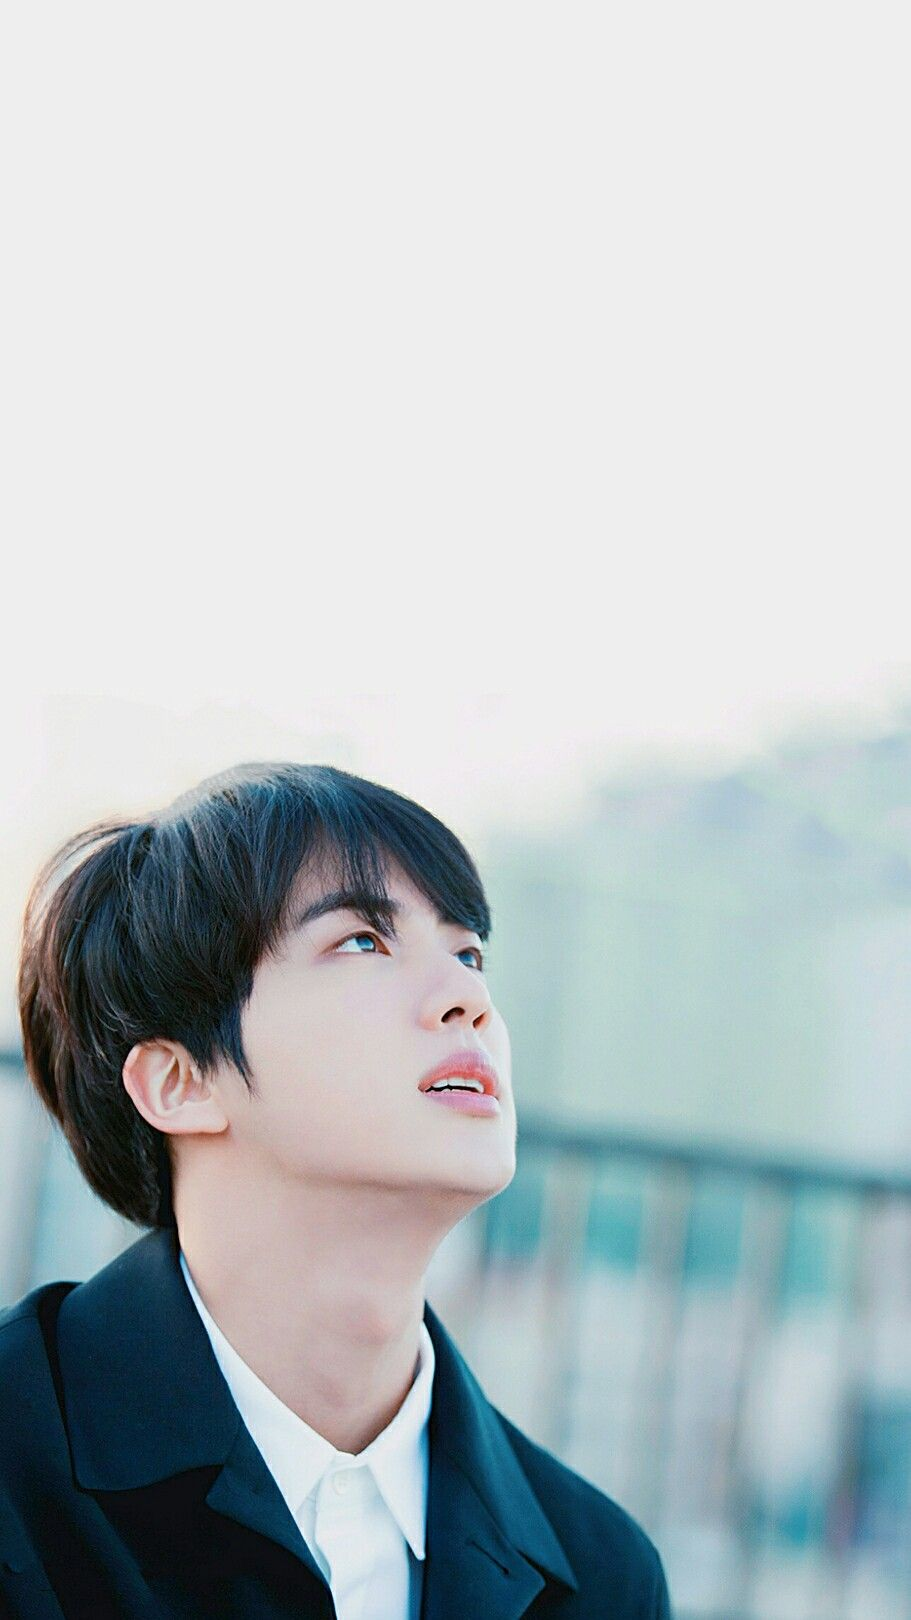 Bts Edits Bts Wallpapers Bts X Dispatch Bts 5th Anniversary Pls Make Sure To Follow Me Before U Save It Find More On My Accou Seokjin Bts Kim Jin Jin